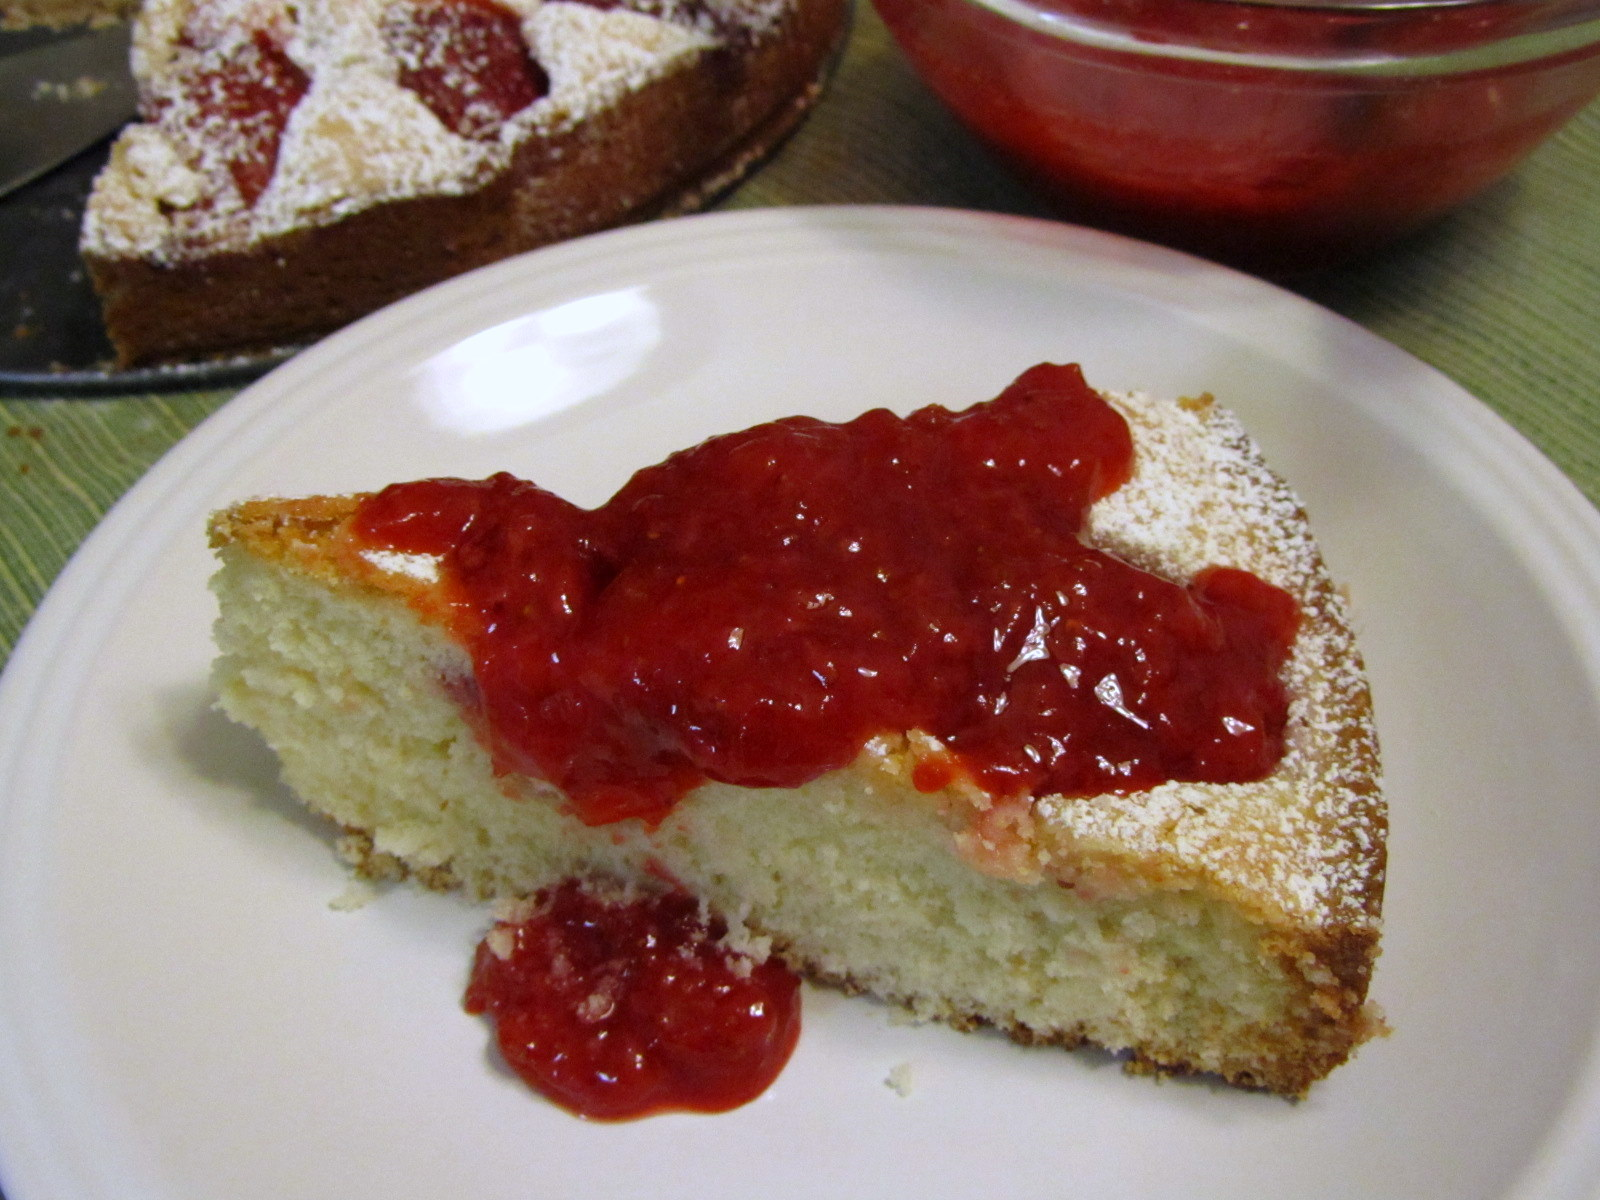 Alosha's Kitchen: Strawberry Cake with Strawberry Compote